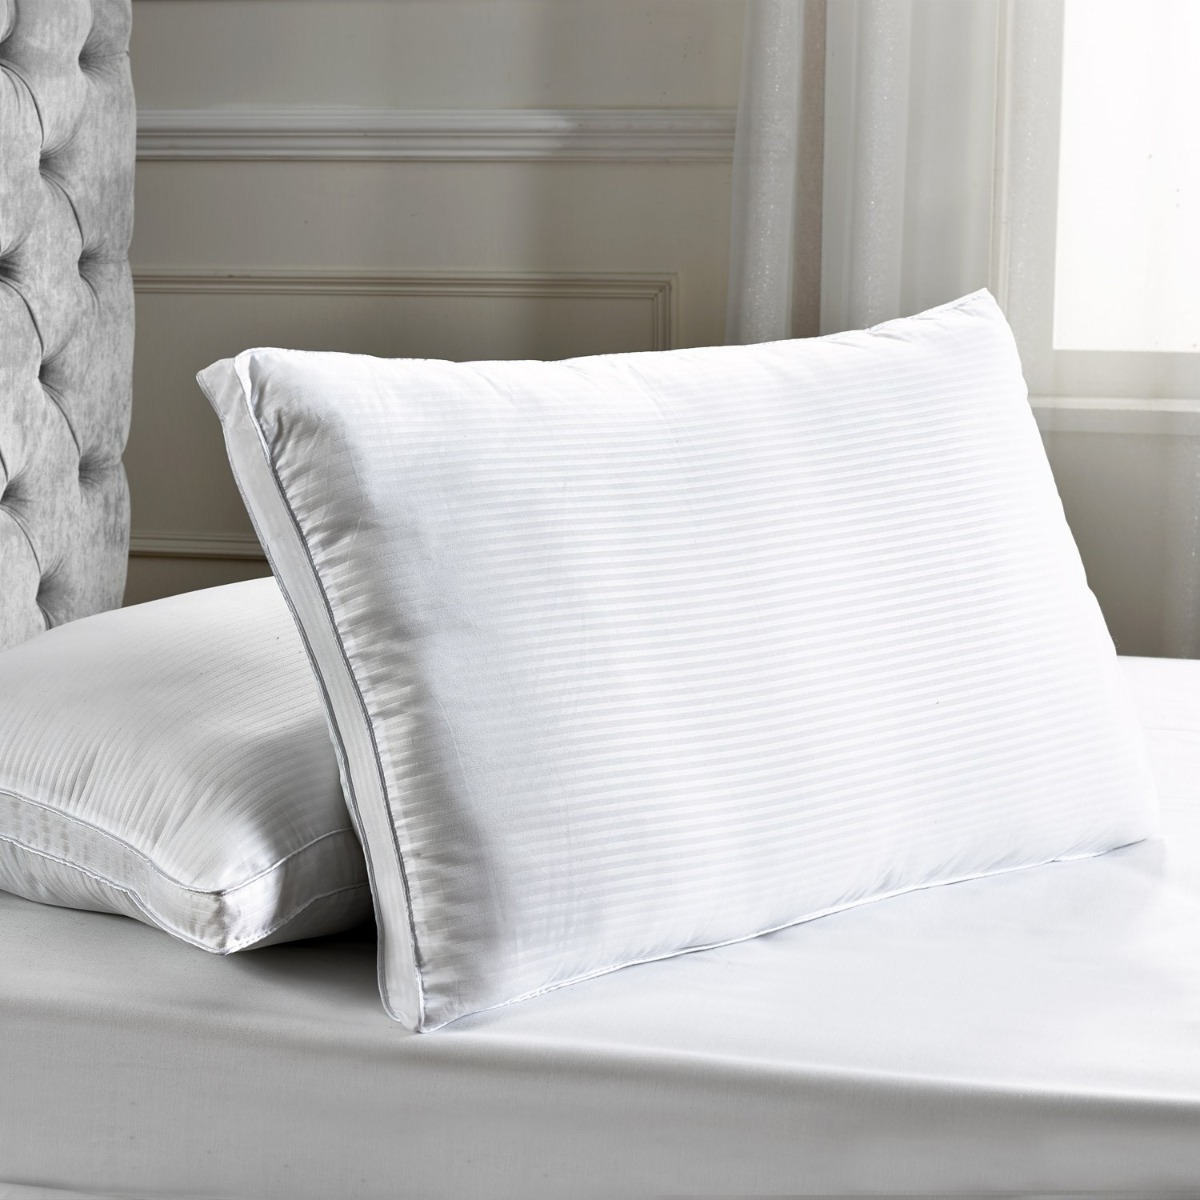 Touch of Satin Pillow - Medium Support (Pair)